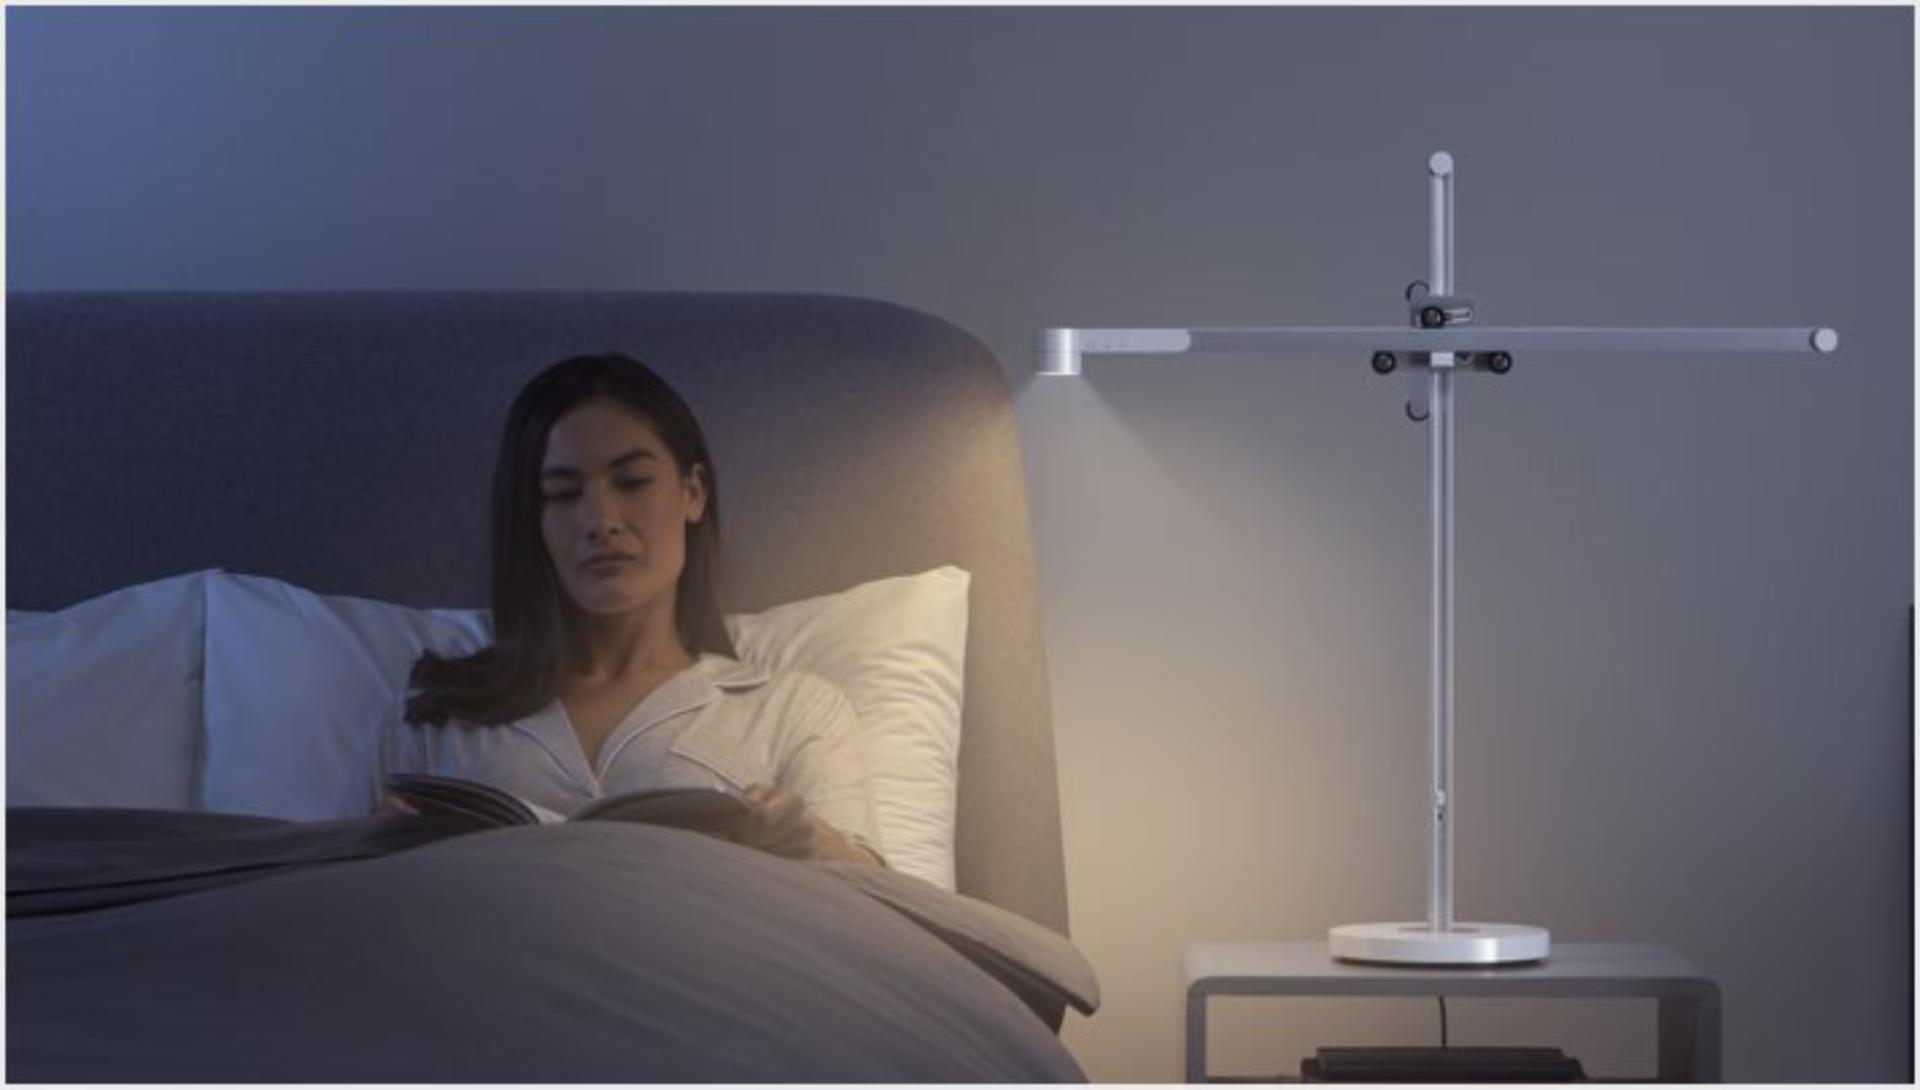 Woman relaxing in bed with the Dyson Lightcycle task light